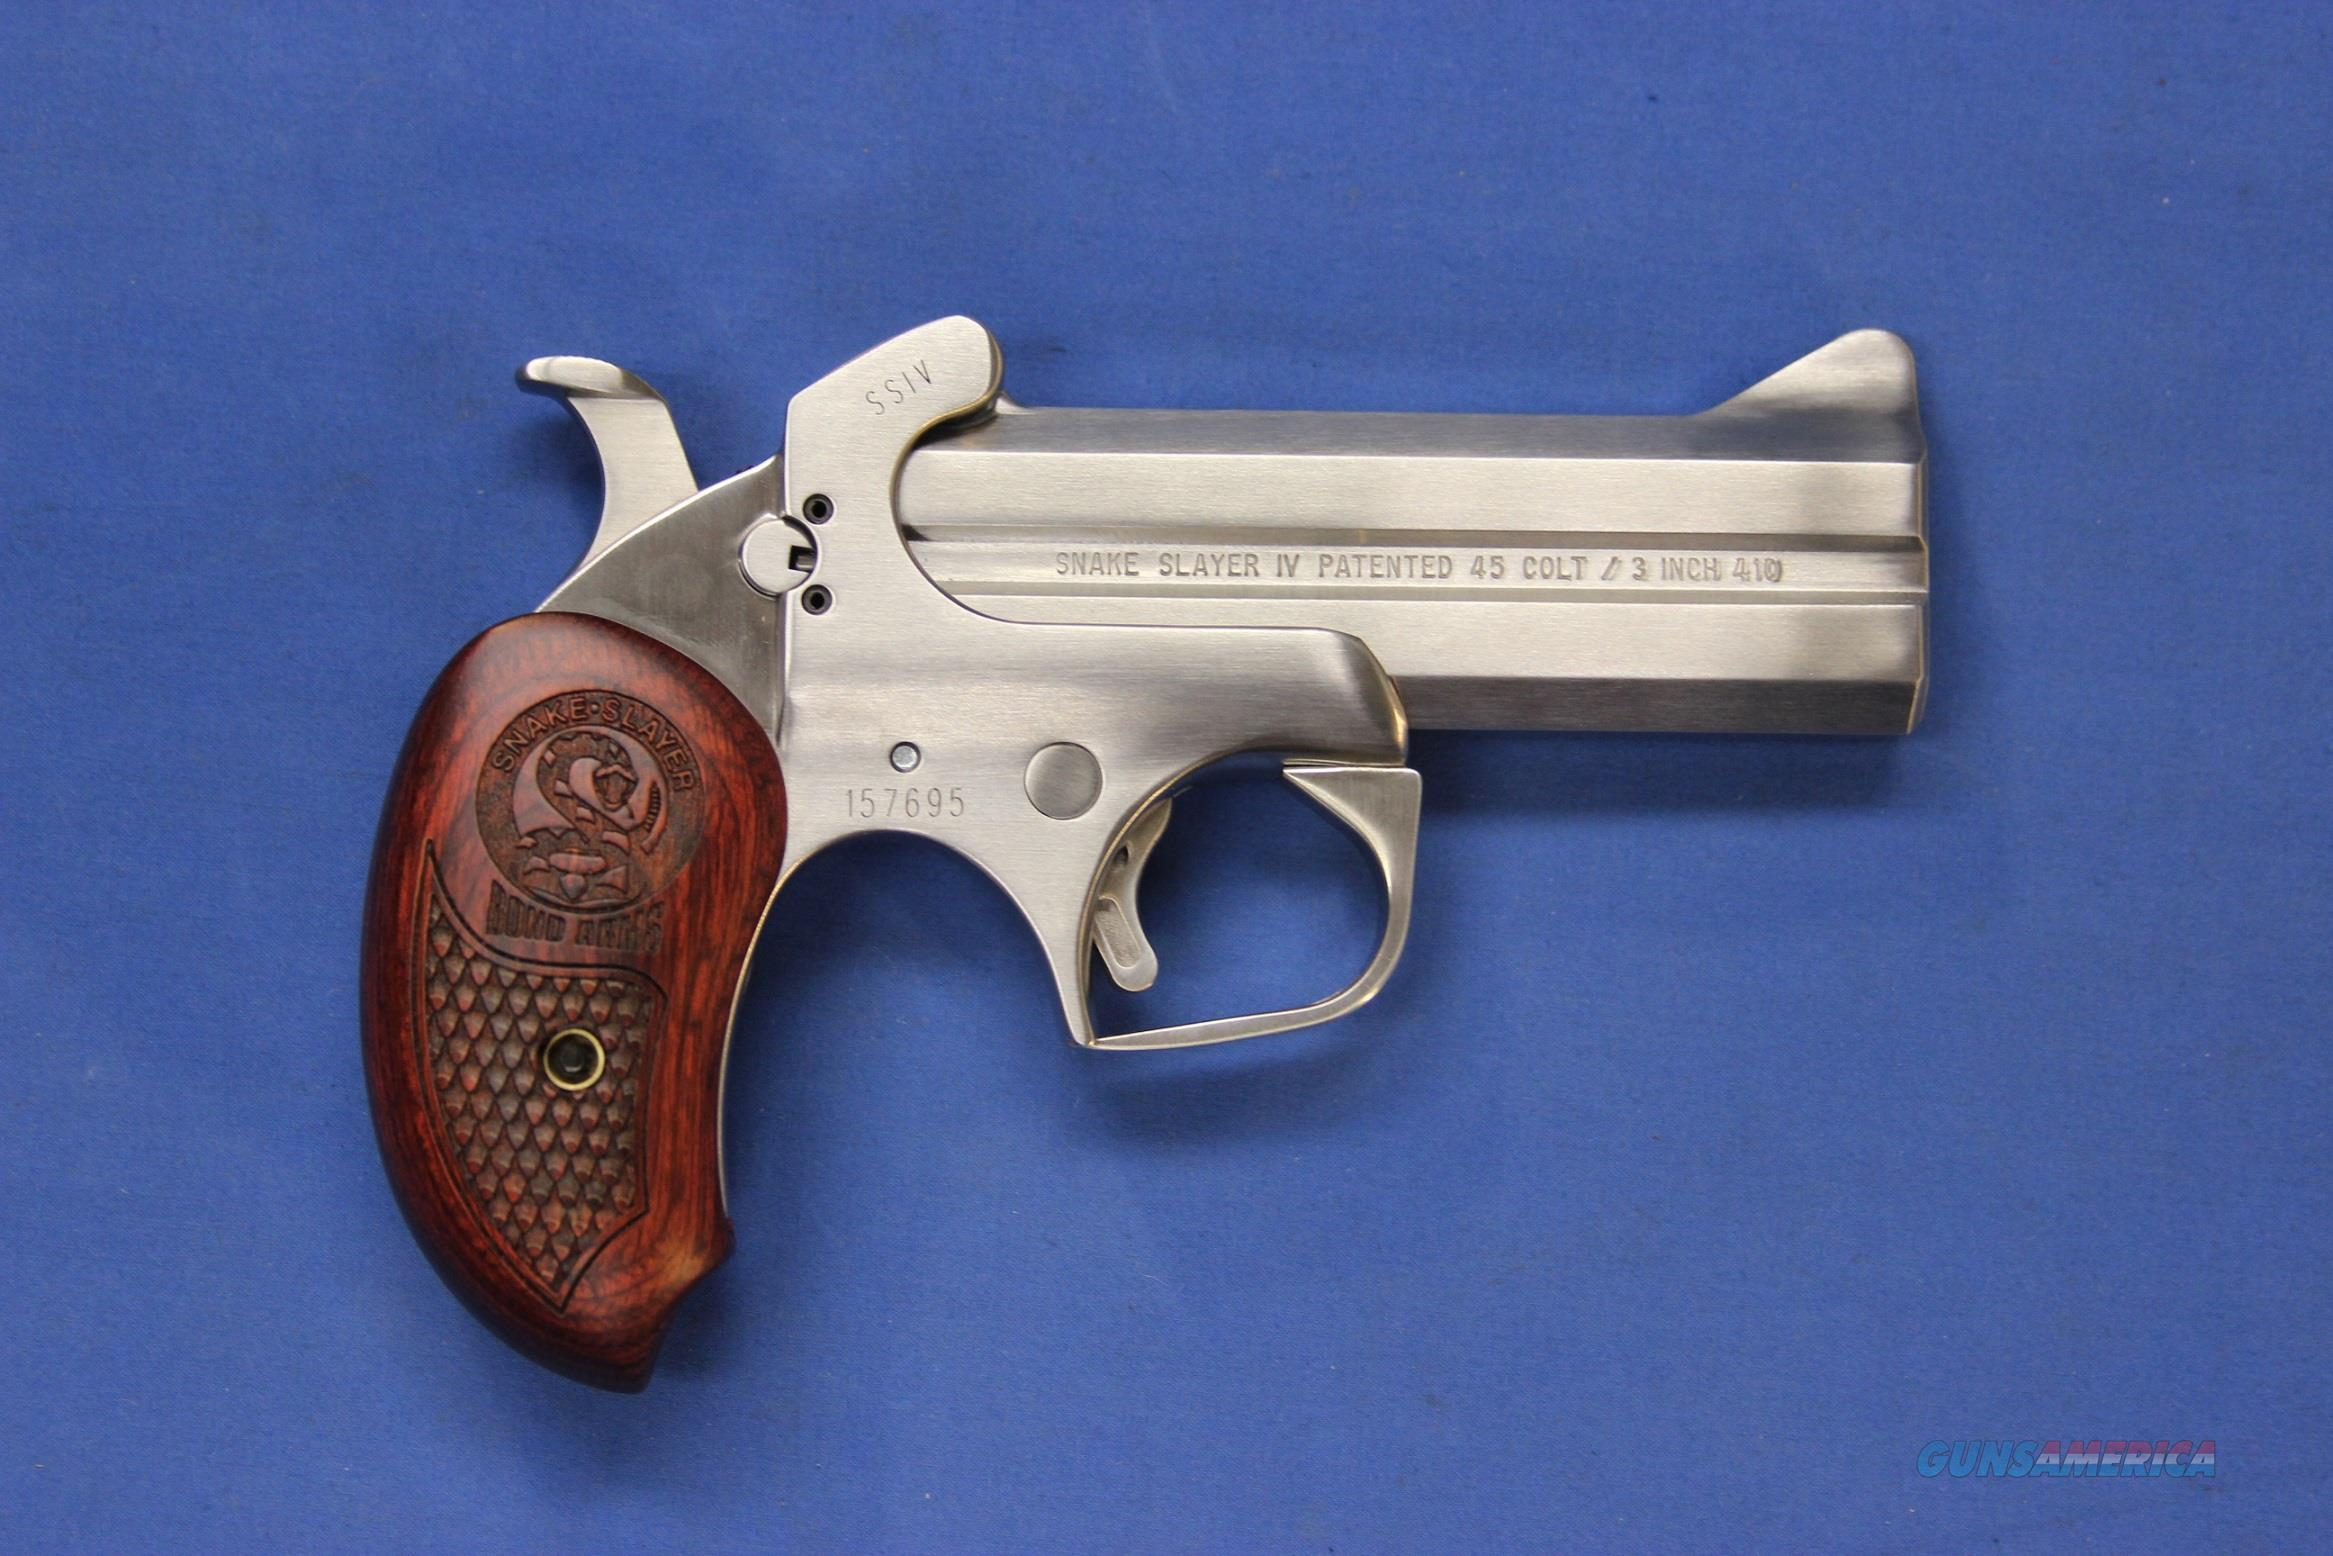 BOND ARMS SNAKE SLAYER IV .45 COLT/.410 GA - NEW!  Guns > Pistols > Bond Derringers